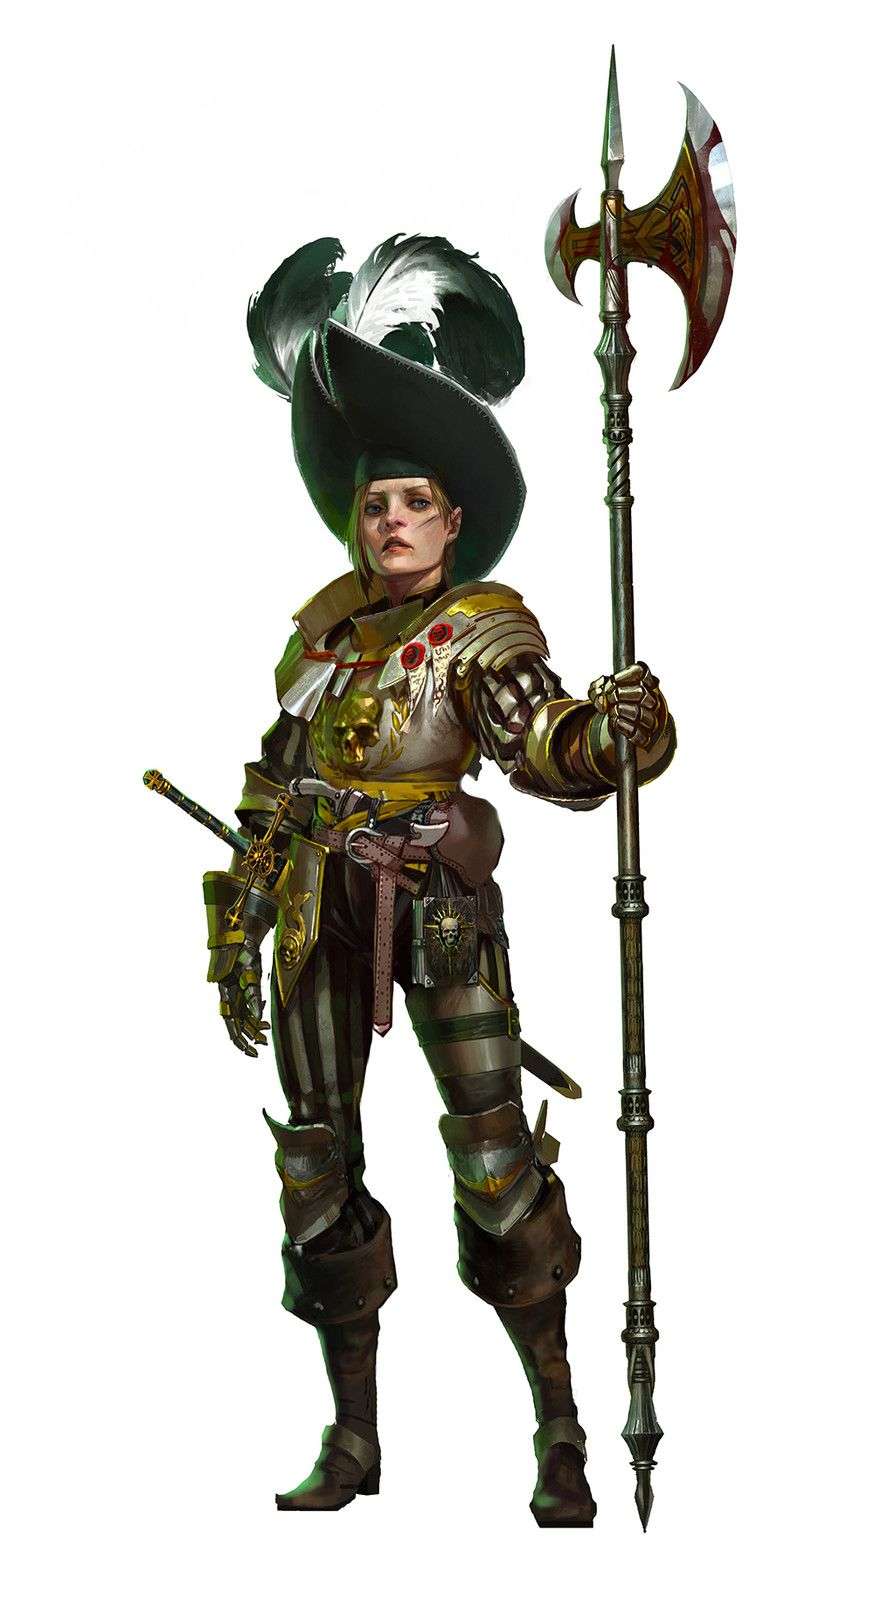 Pin by Jesse Bechtold on Fantasy! in 2019 | Warhammer fantasy